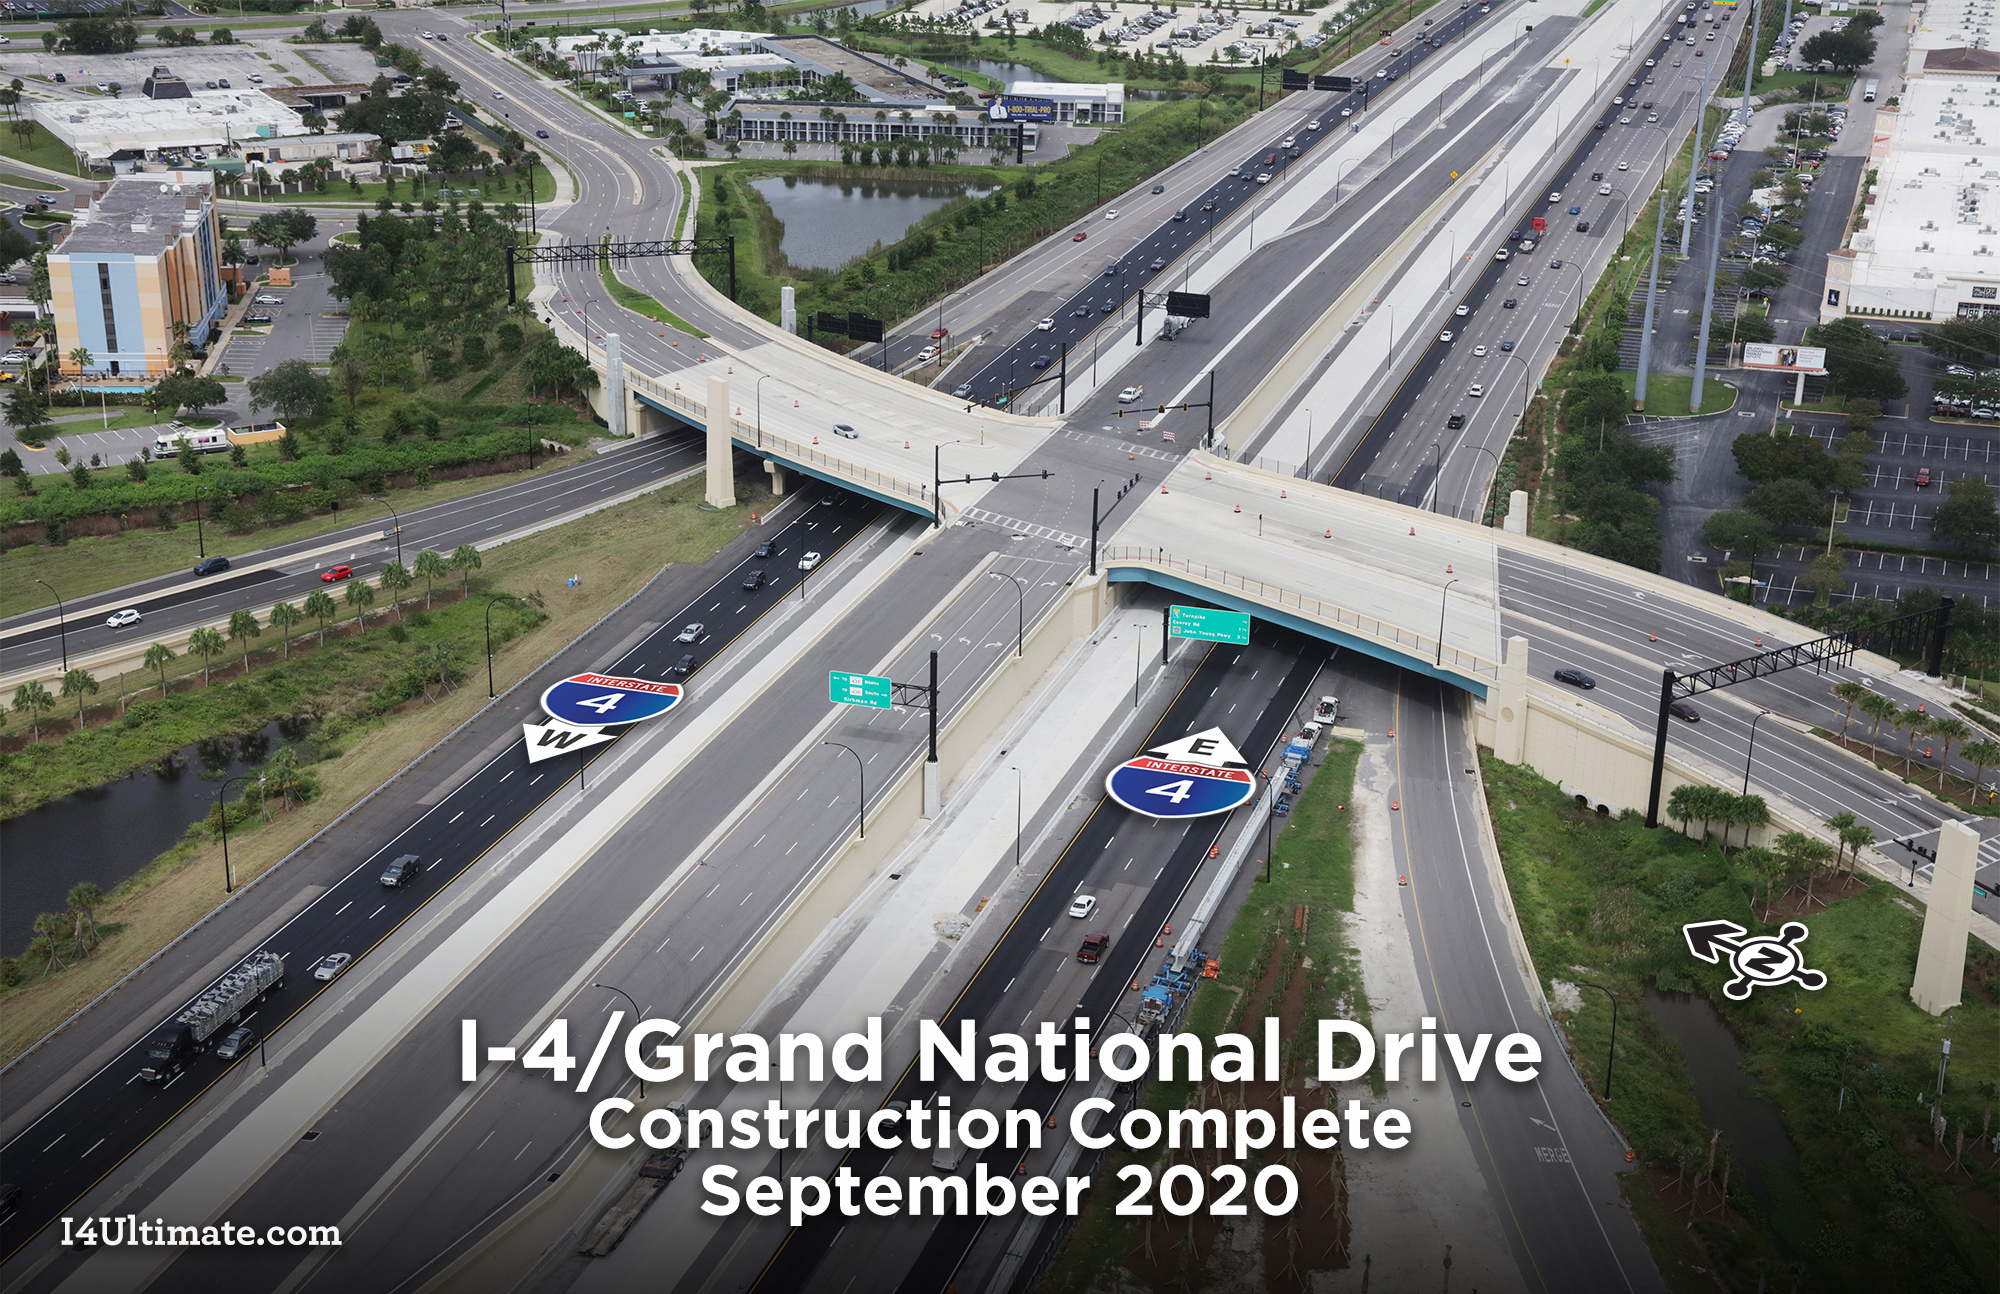 4573-I-4-Grand-National-Image-Construction-Complete-2020